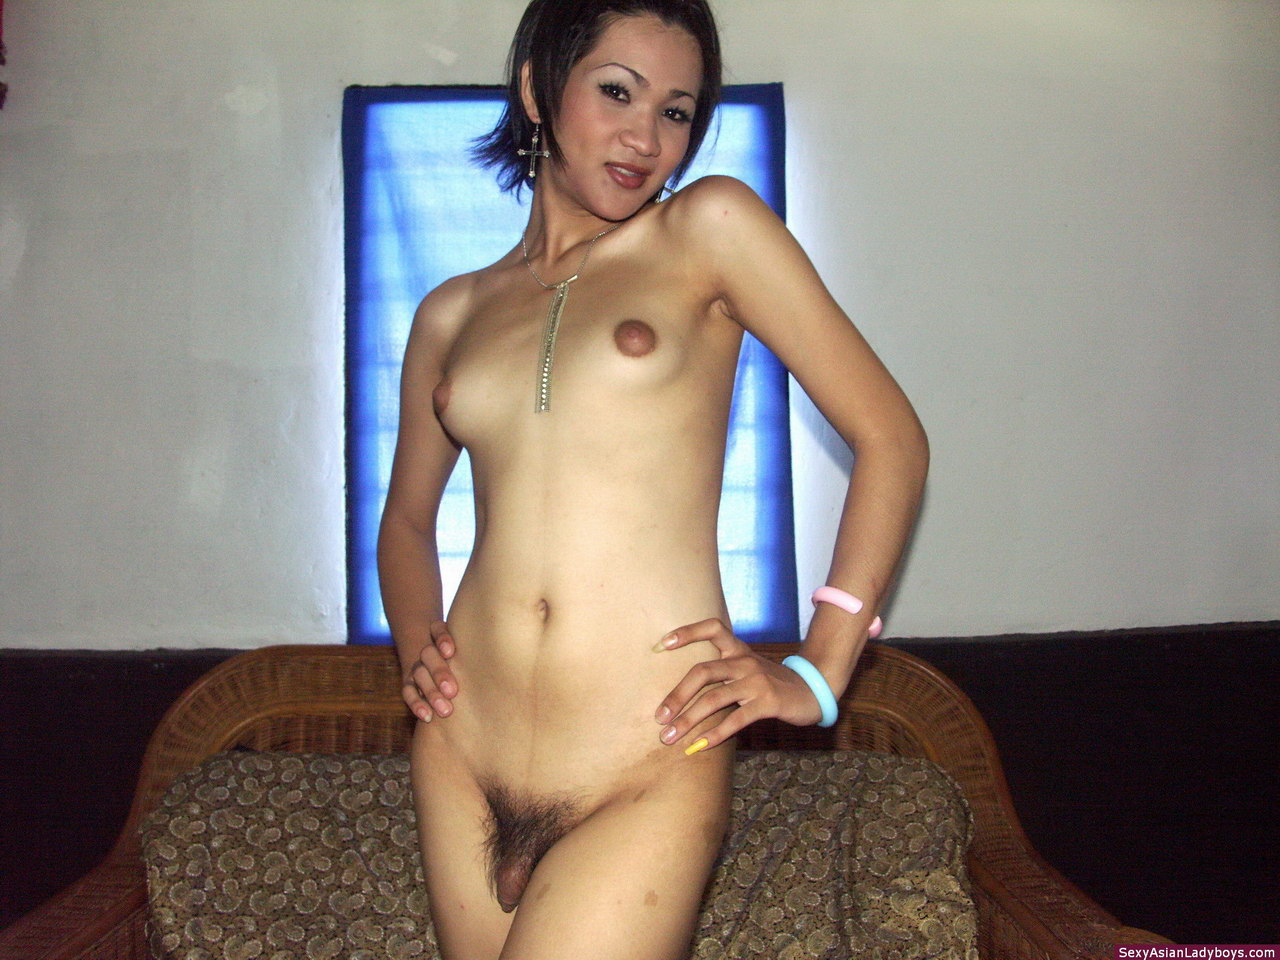 A shemale posing nude